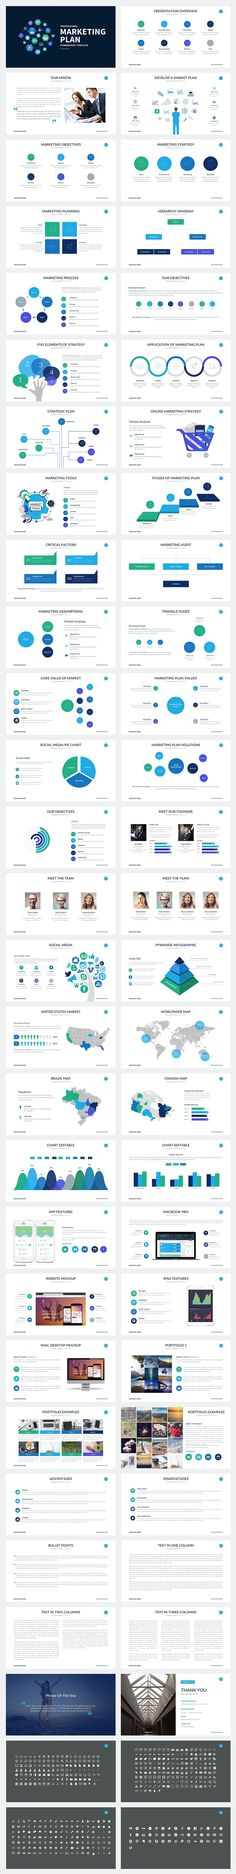 Marketing Plan Powerpoint Template by SlidePro on @creativemarket